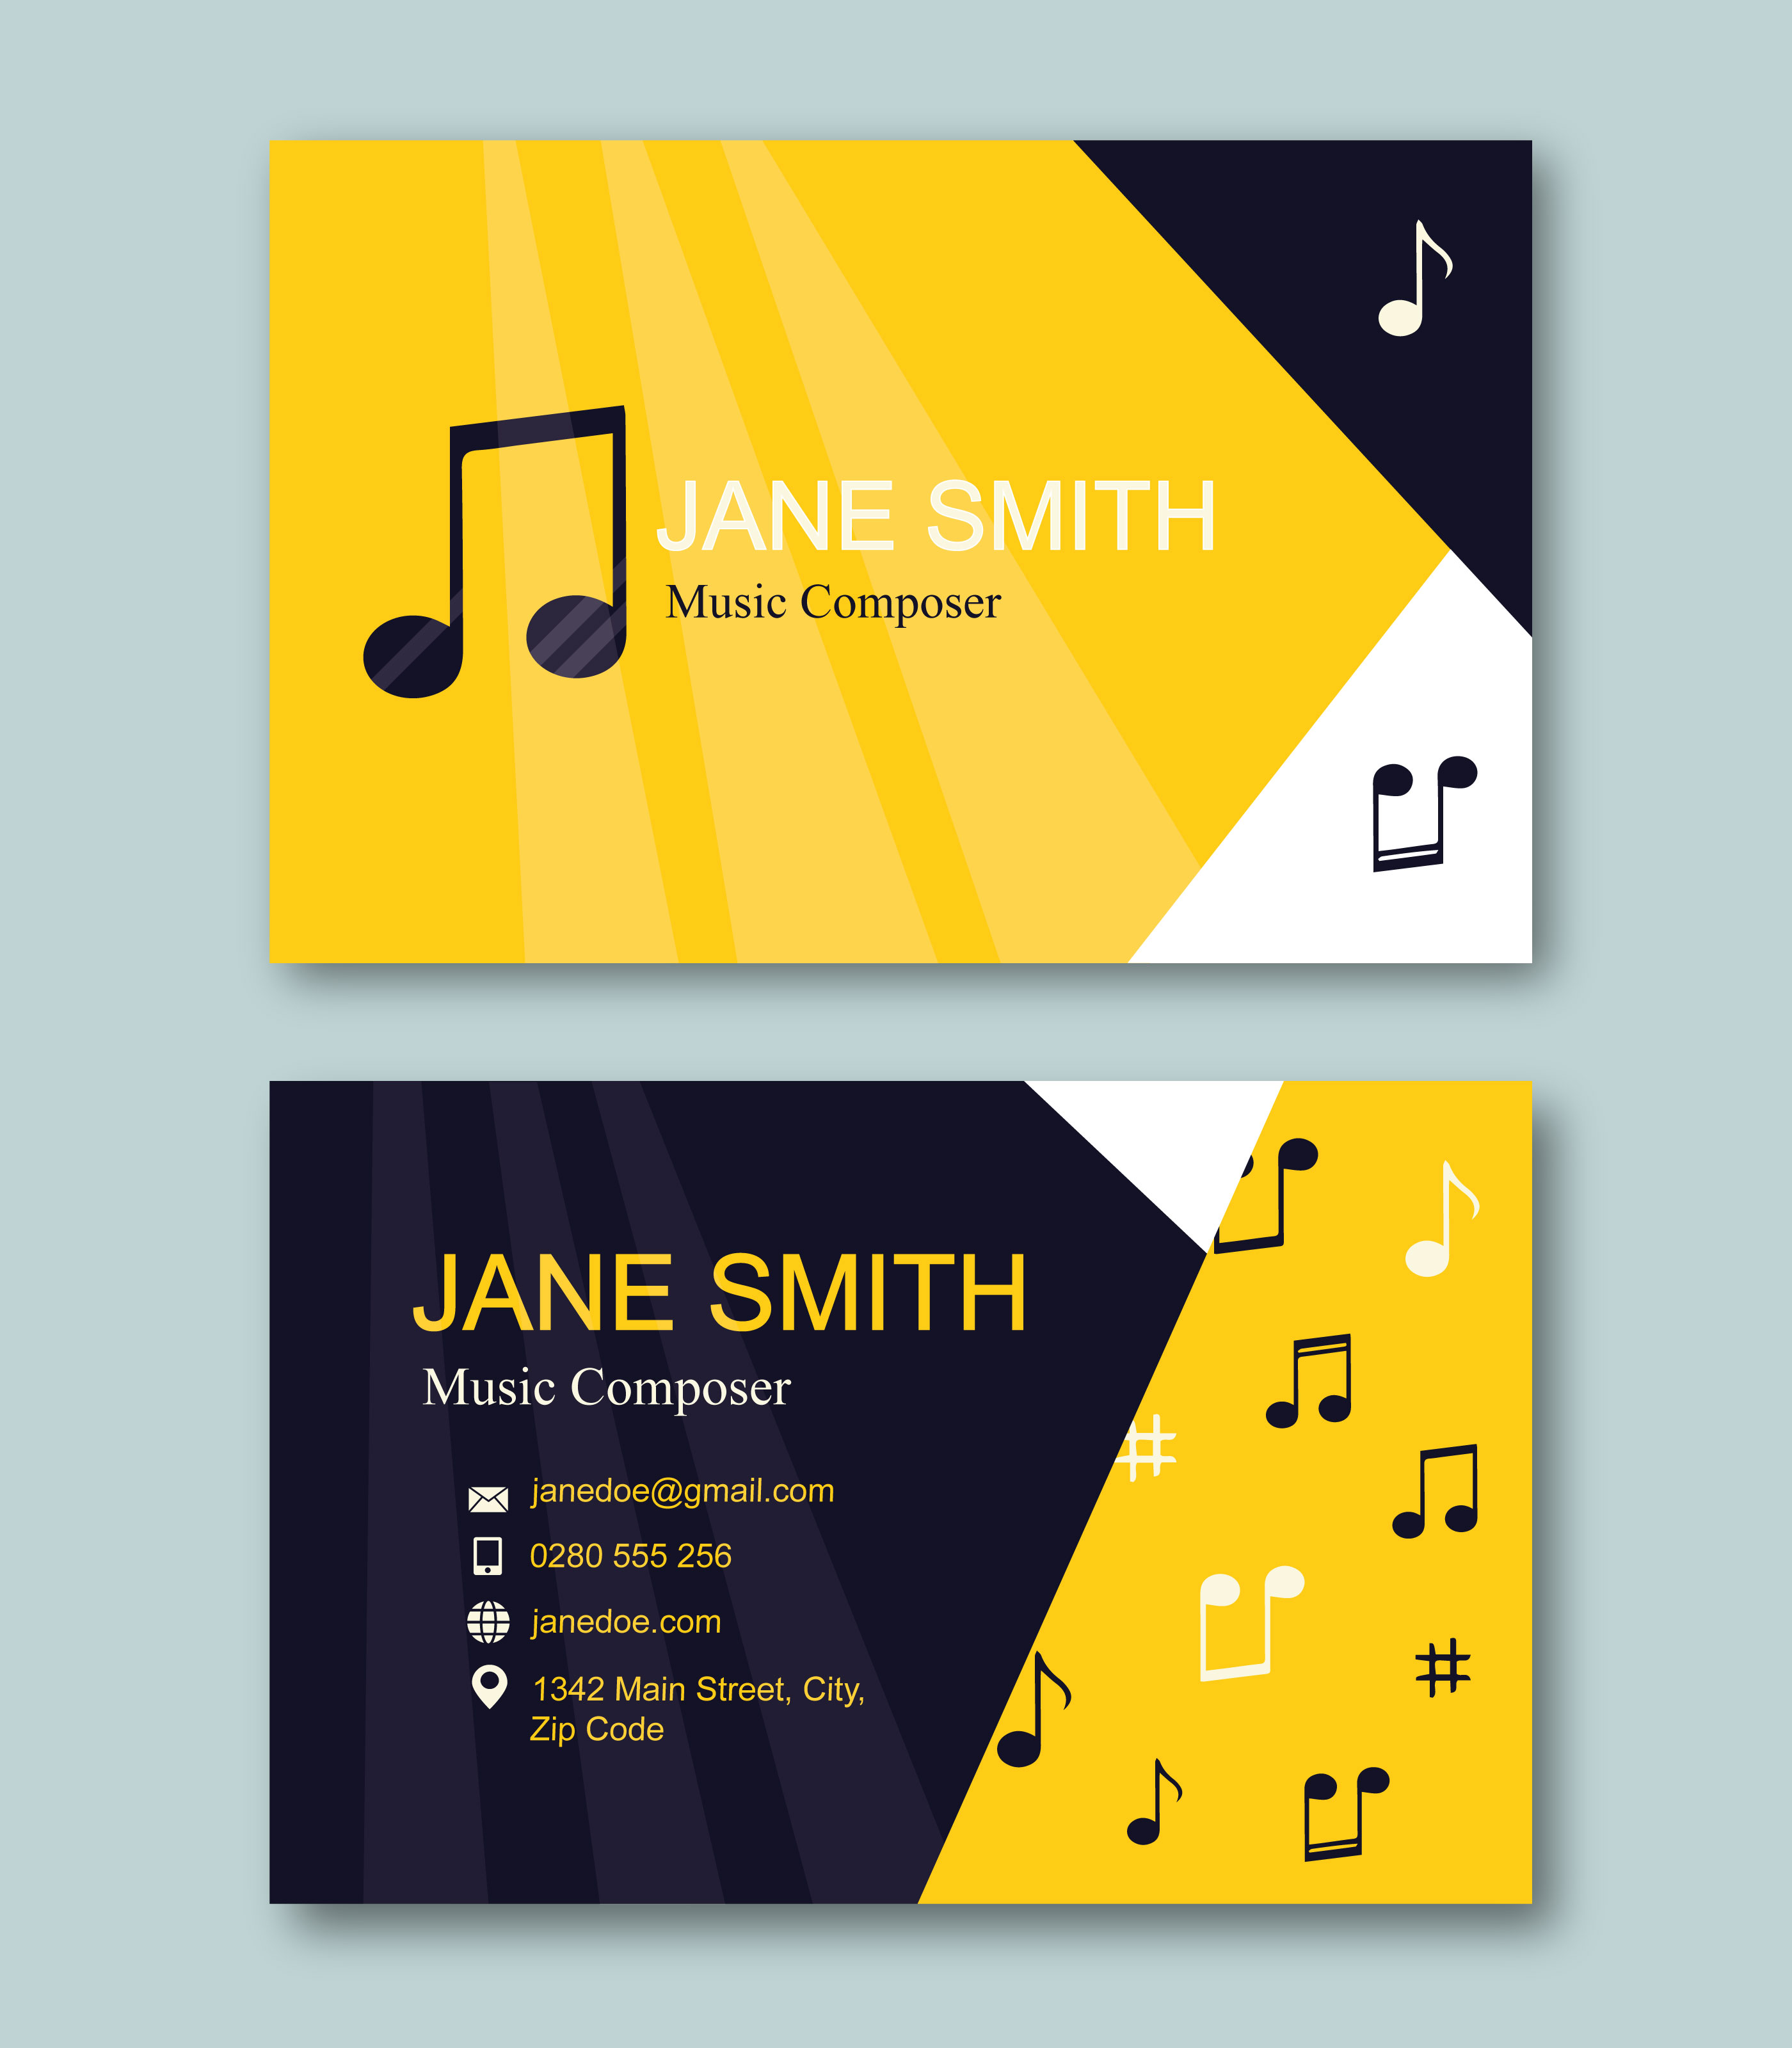 Music Composer Business Card Template - Download Free Vector Art ...